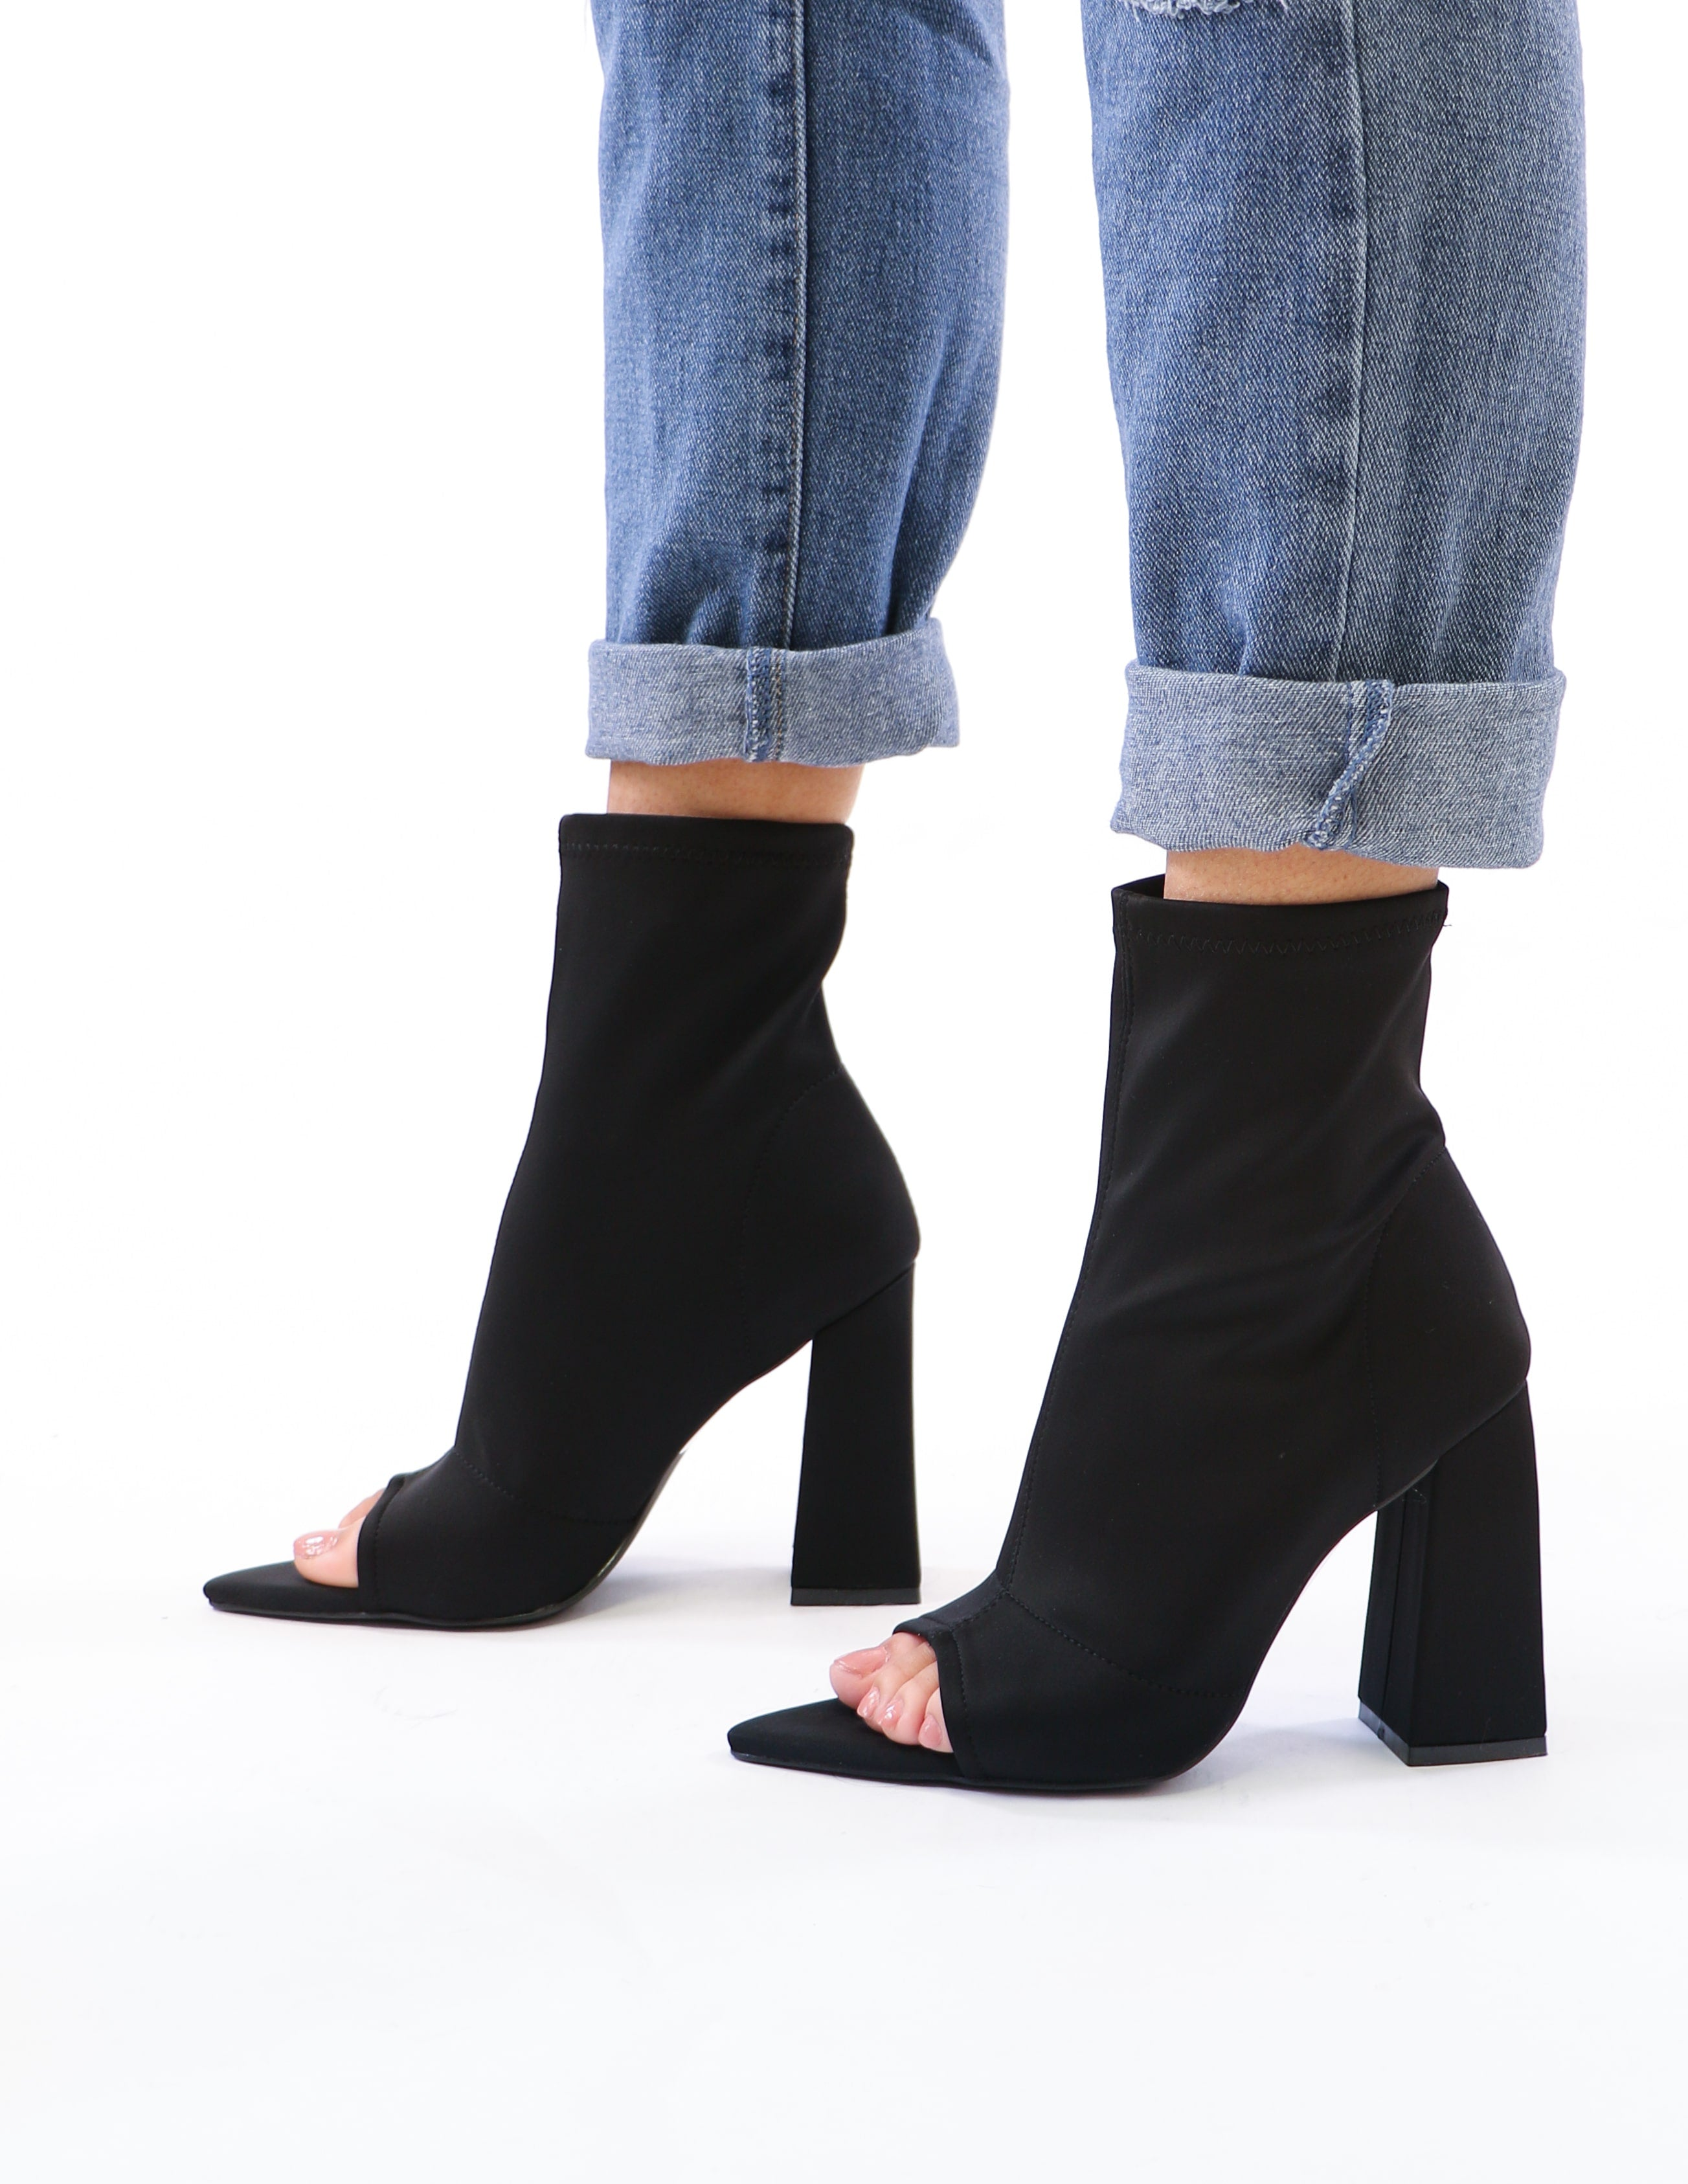 model standing in black sit tight bootie - elle bleu shoes